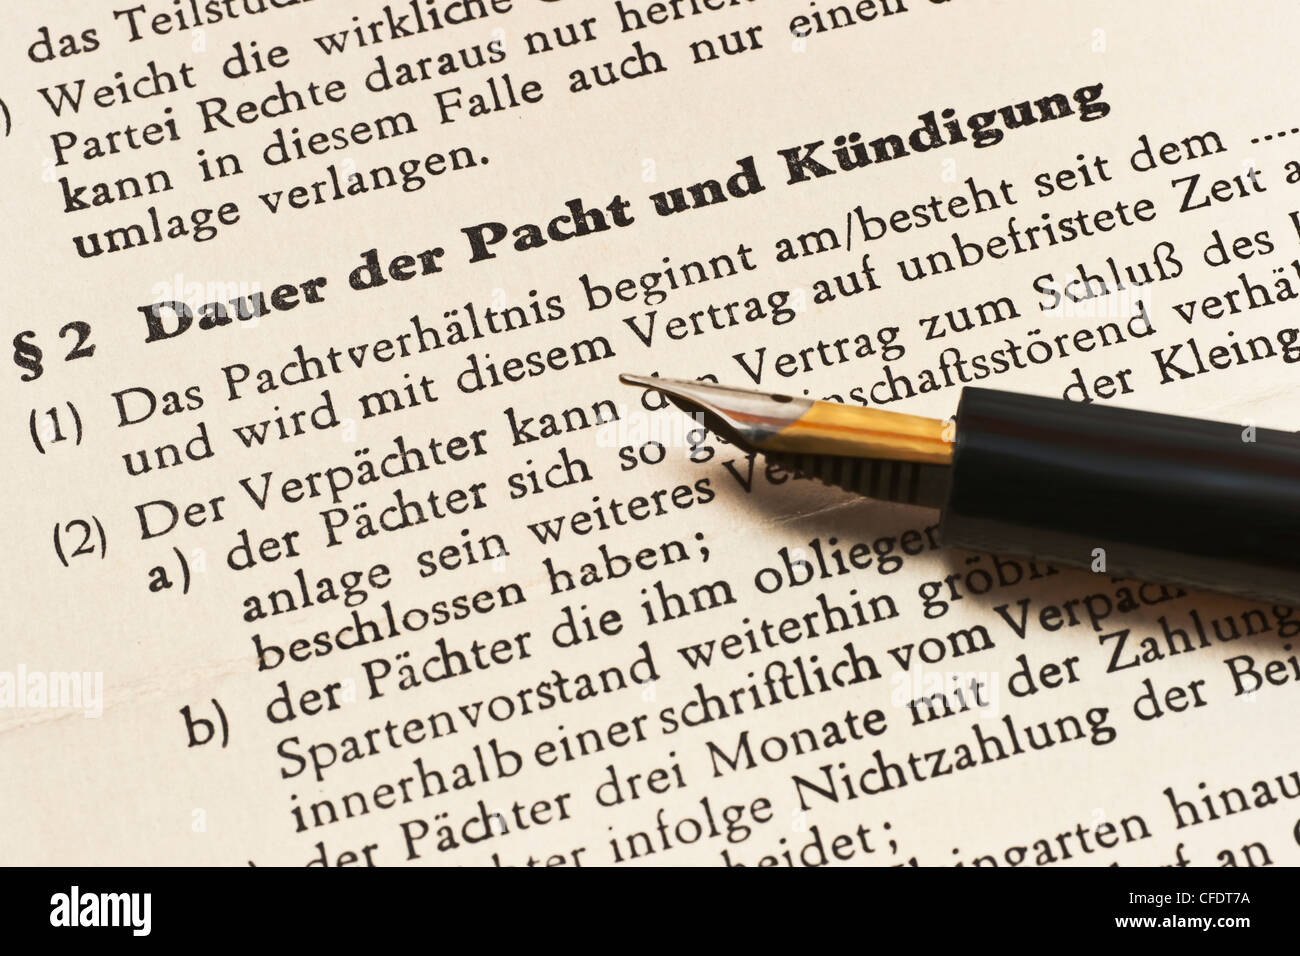 old lease contract from 1968, German language, duration of the lease and cancellation, alongside is a fountain pen. - Stock Image